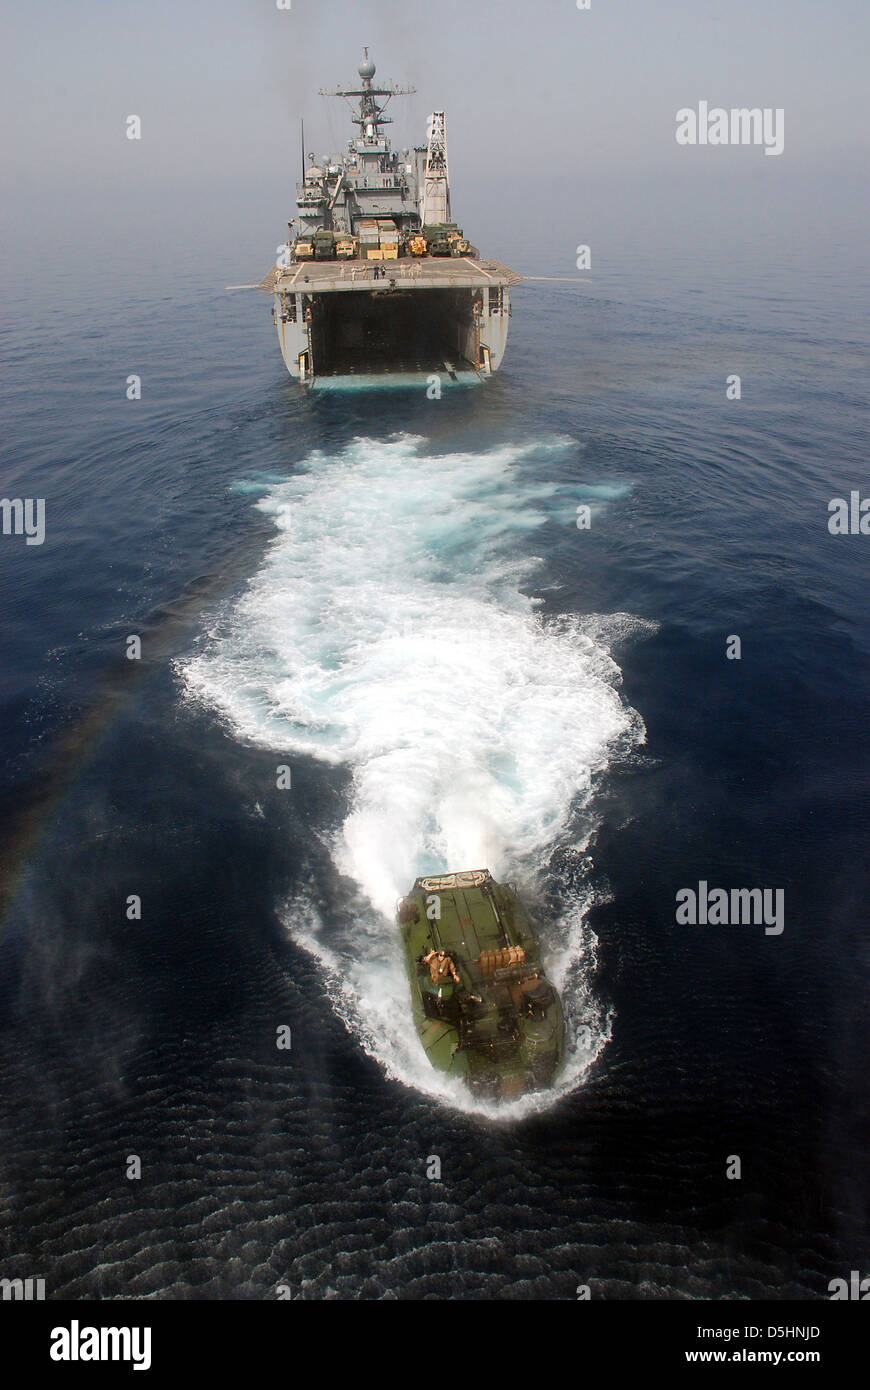 A US Navy amphibious assault vehicle departs the well deck of the amphibious dock landing ship USS Rushmore during Stock Photo